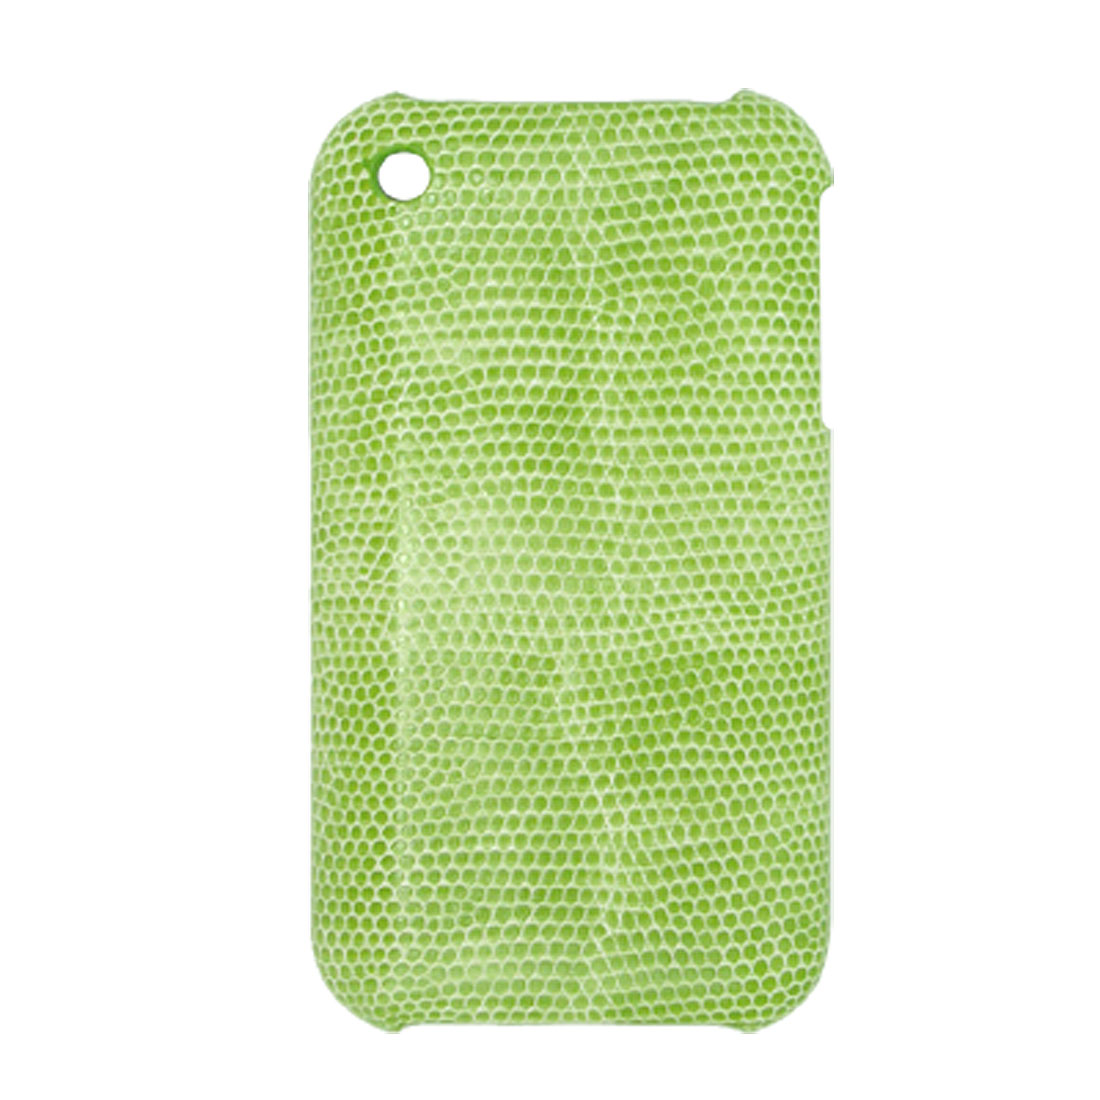 Green Snakeskin Leather Hard Plastic Back Case for Apple iPhone 3G / 3GS